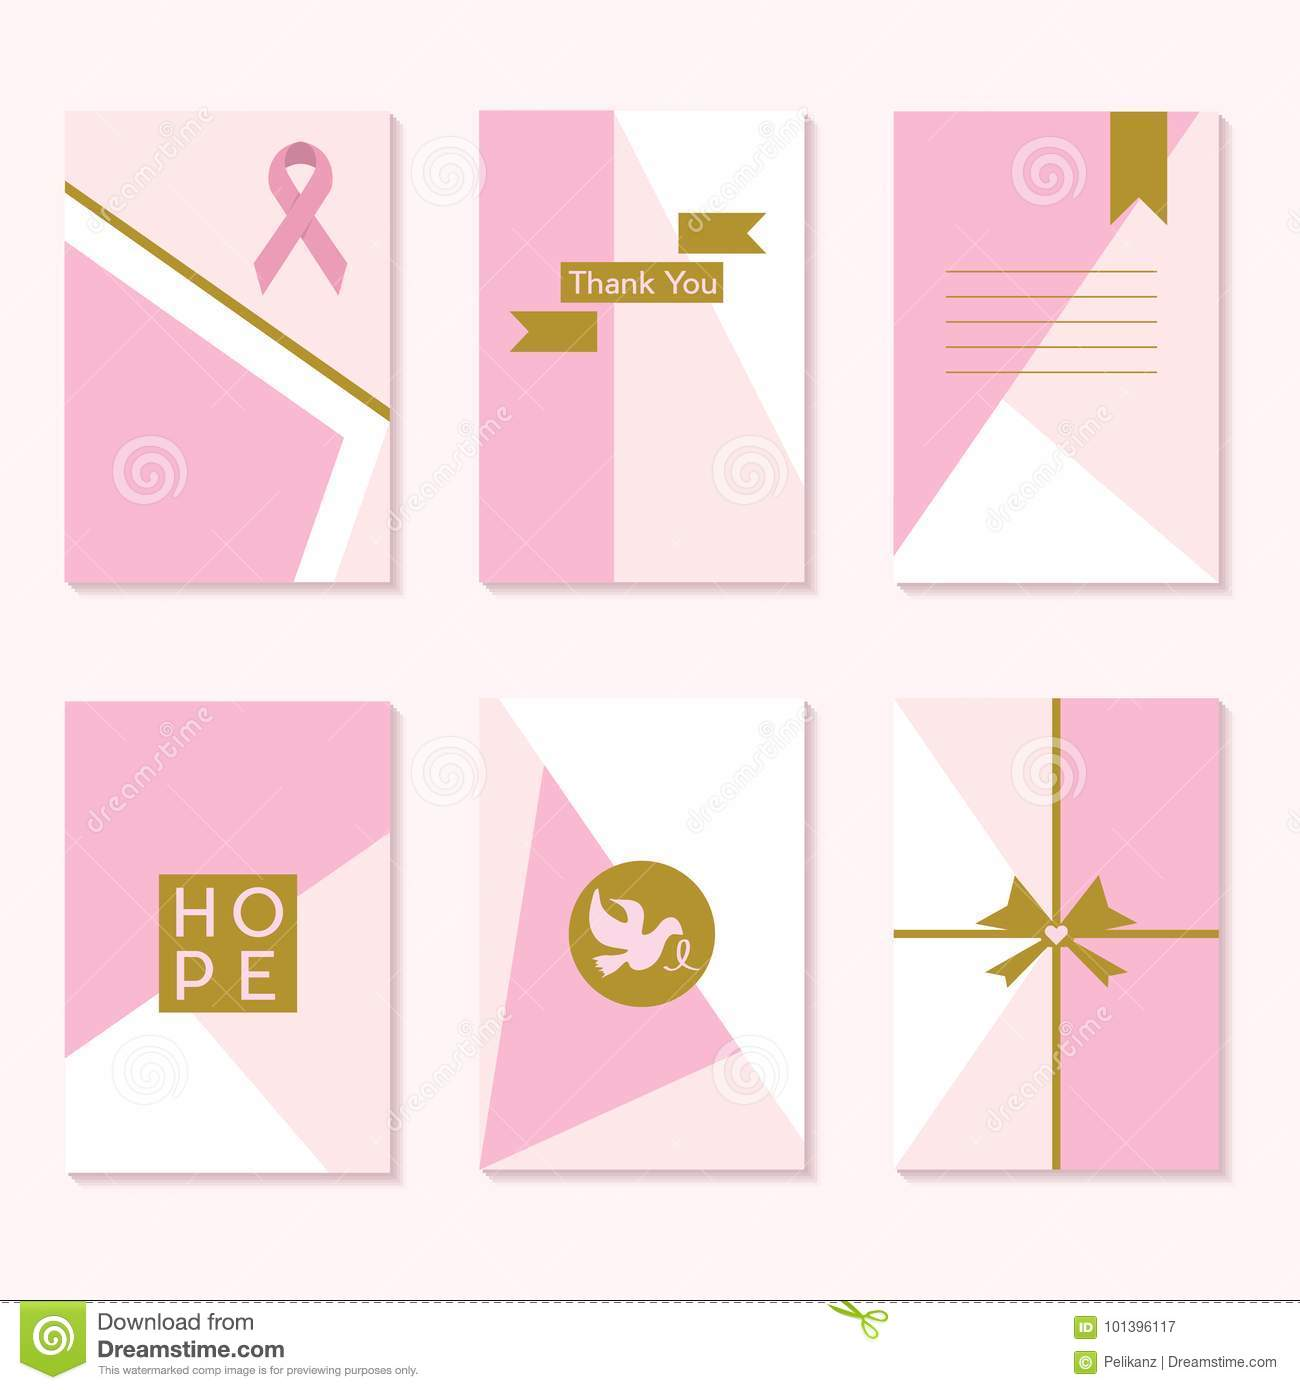 Cute Pink Cancer Awareness Trendy Backgrounds Template Cards Set